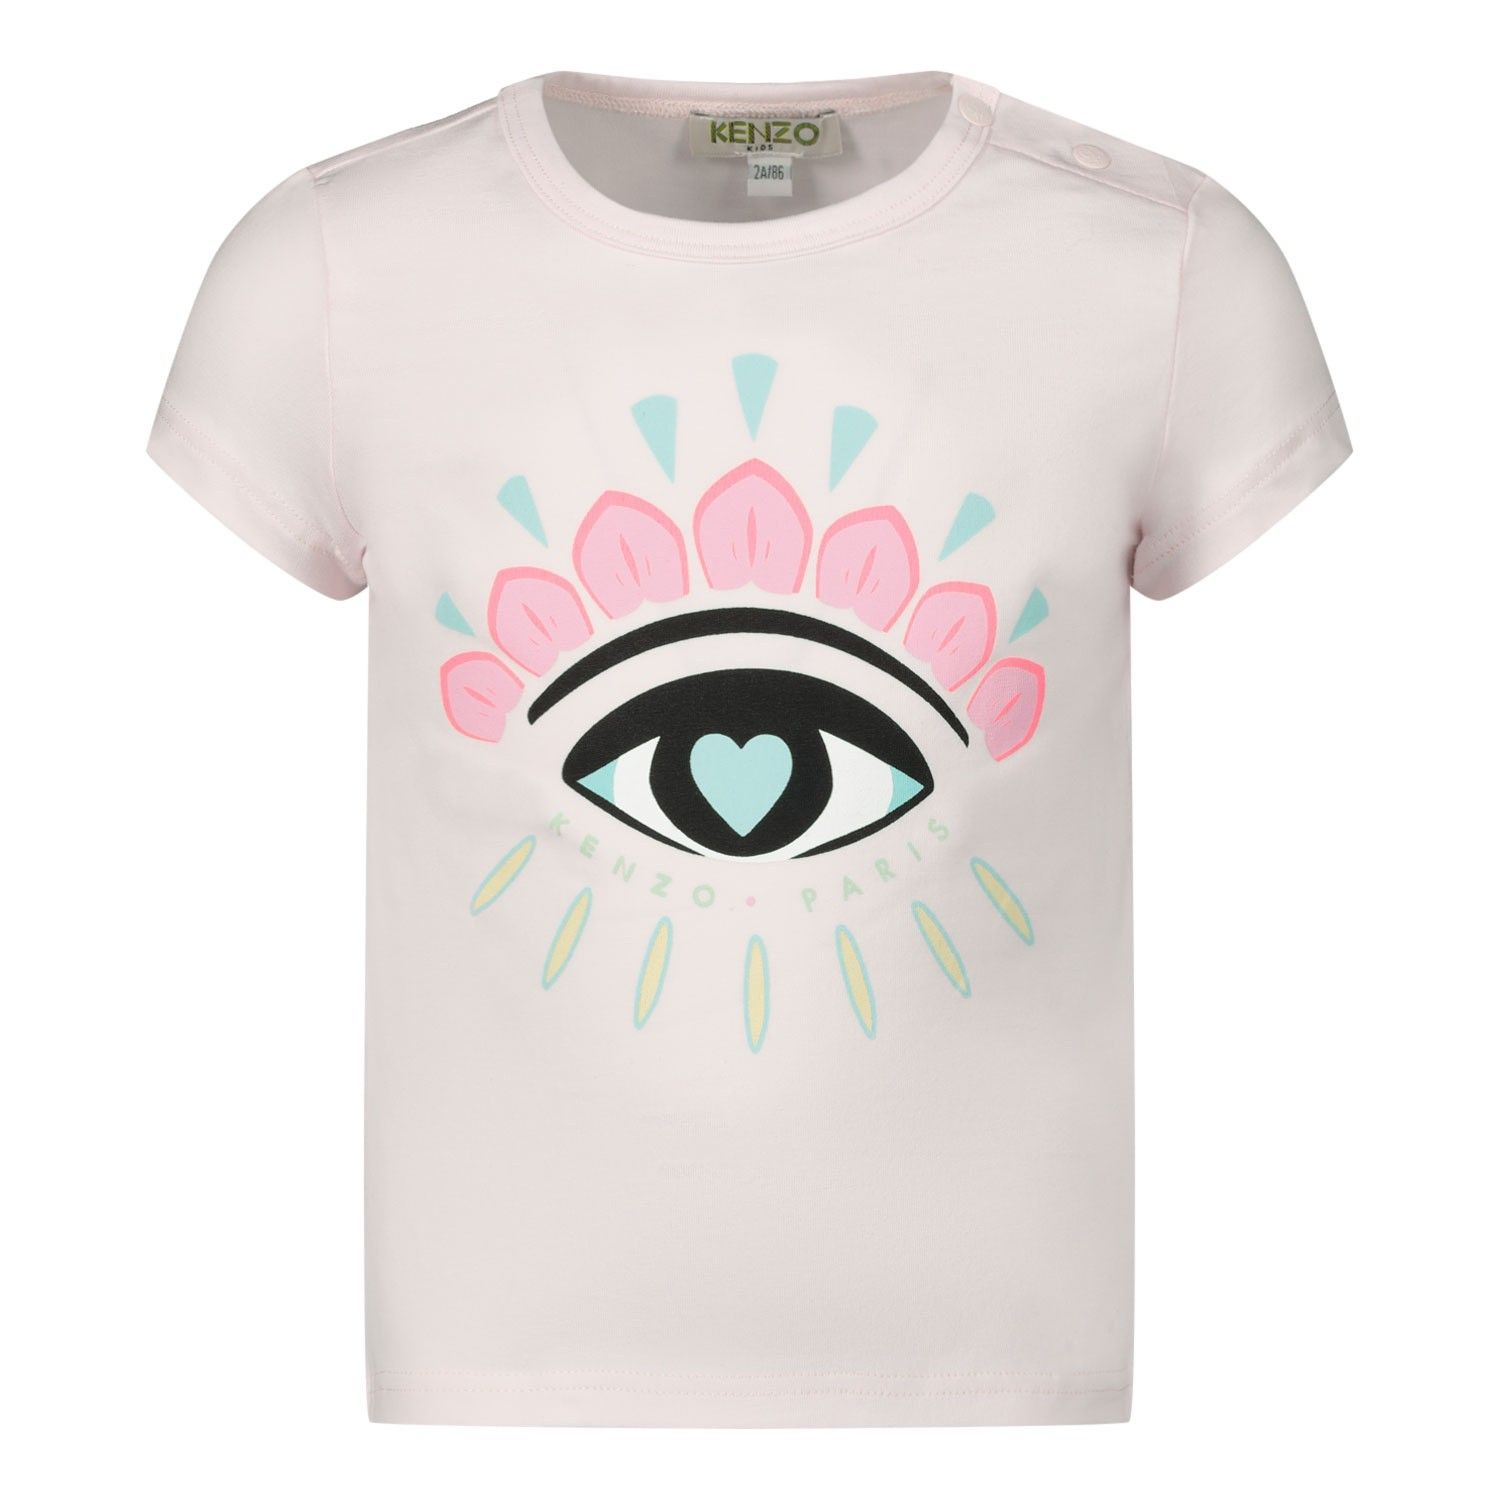 Picture of Kenzo 10017 baby shirt light pink